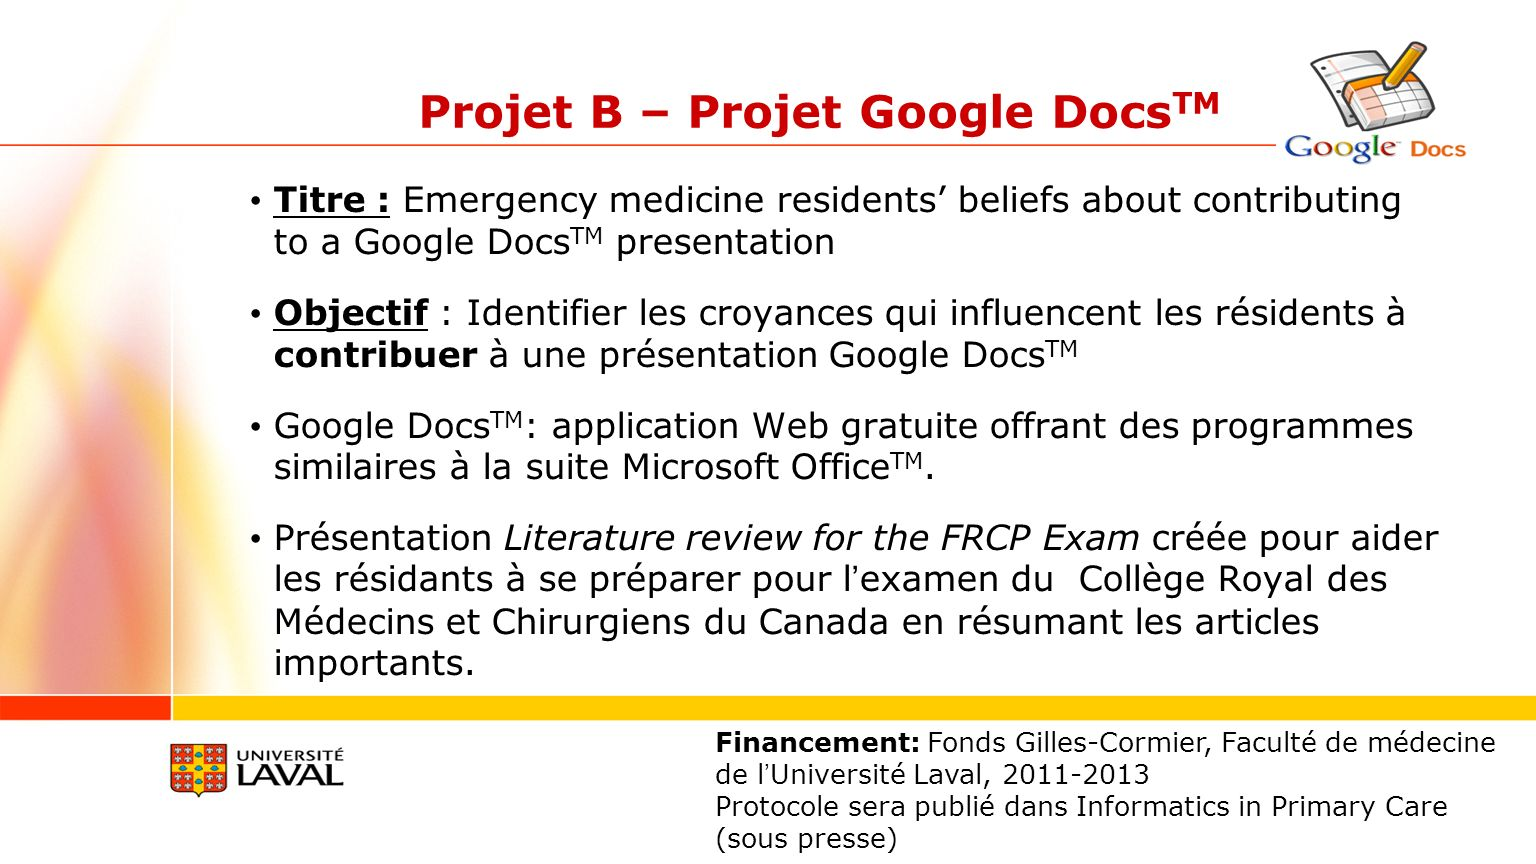 Projet B – Projet Google Docs TM Titre : Emergency medicine residents beliefs about contributing to a Google Docs TM presentation Objectif : Identifier les croyances qui influencent les résidents à contribuer à une présentation Google Docs TM Google Docs TM : application Web gratuite offrant des programmes similaires à la suite Microsoft Office TM.